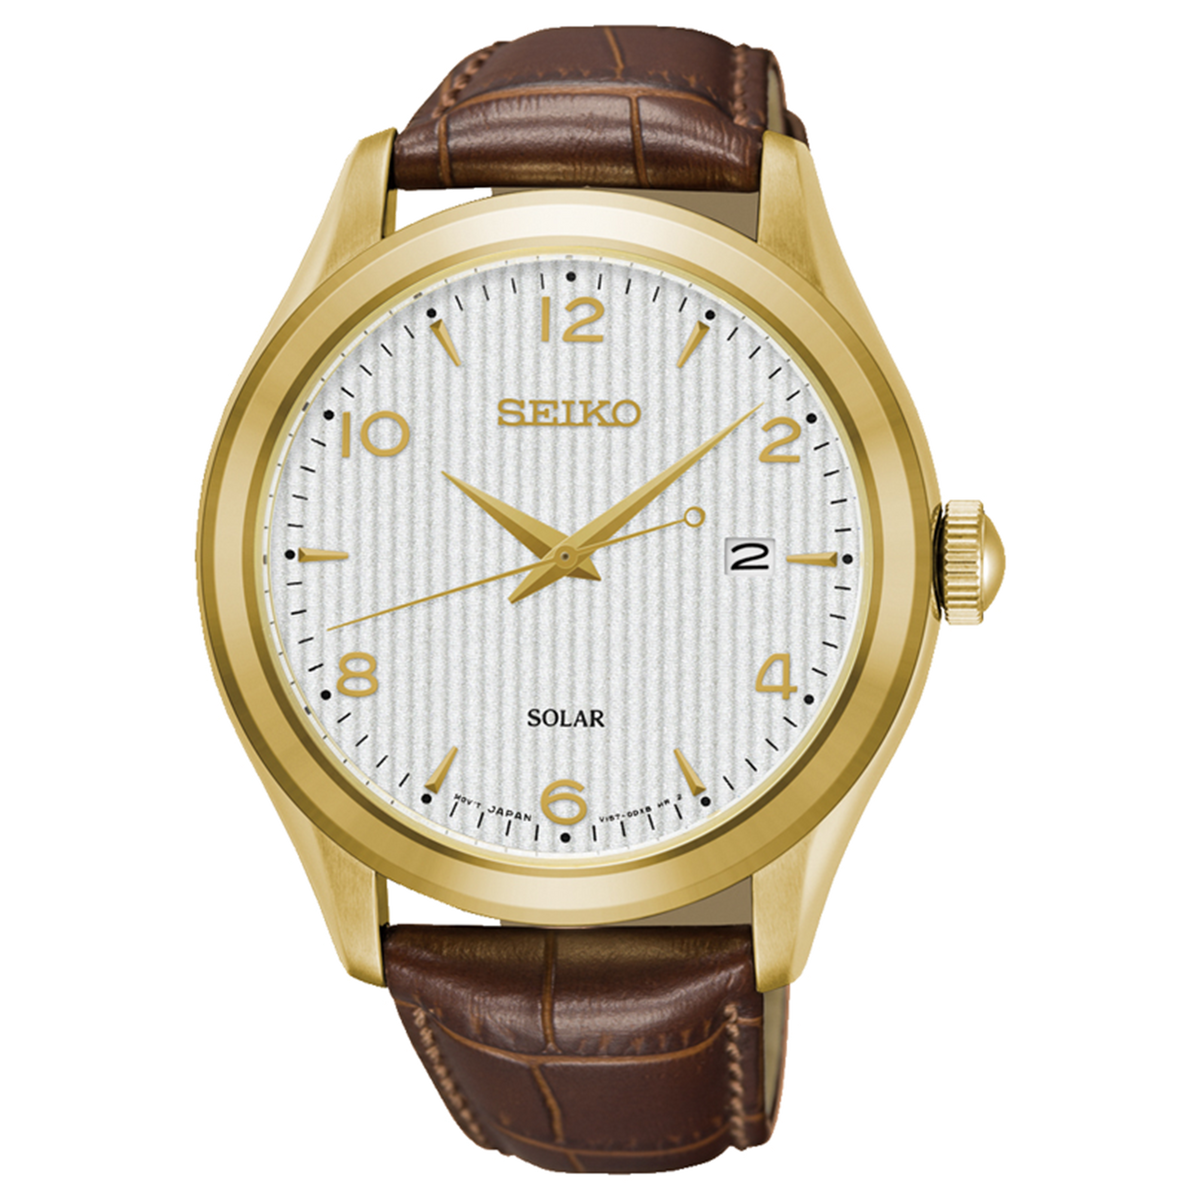 Seiko - G/T Solar Watch with Brown leather